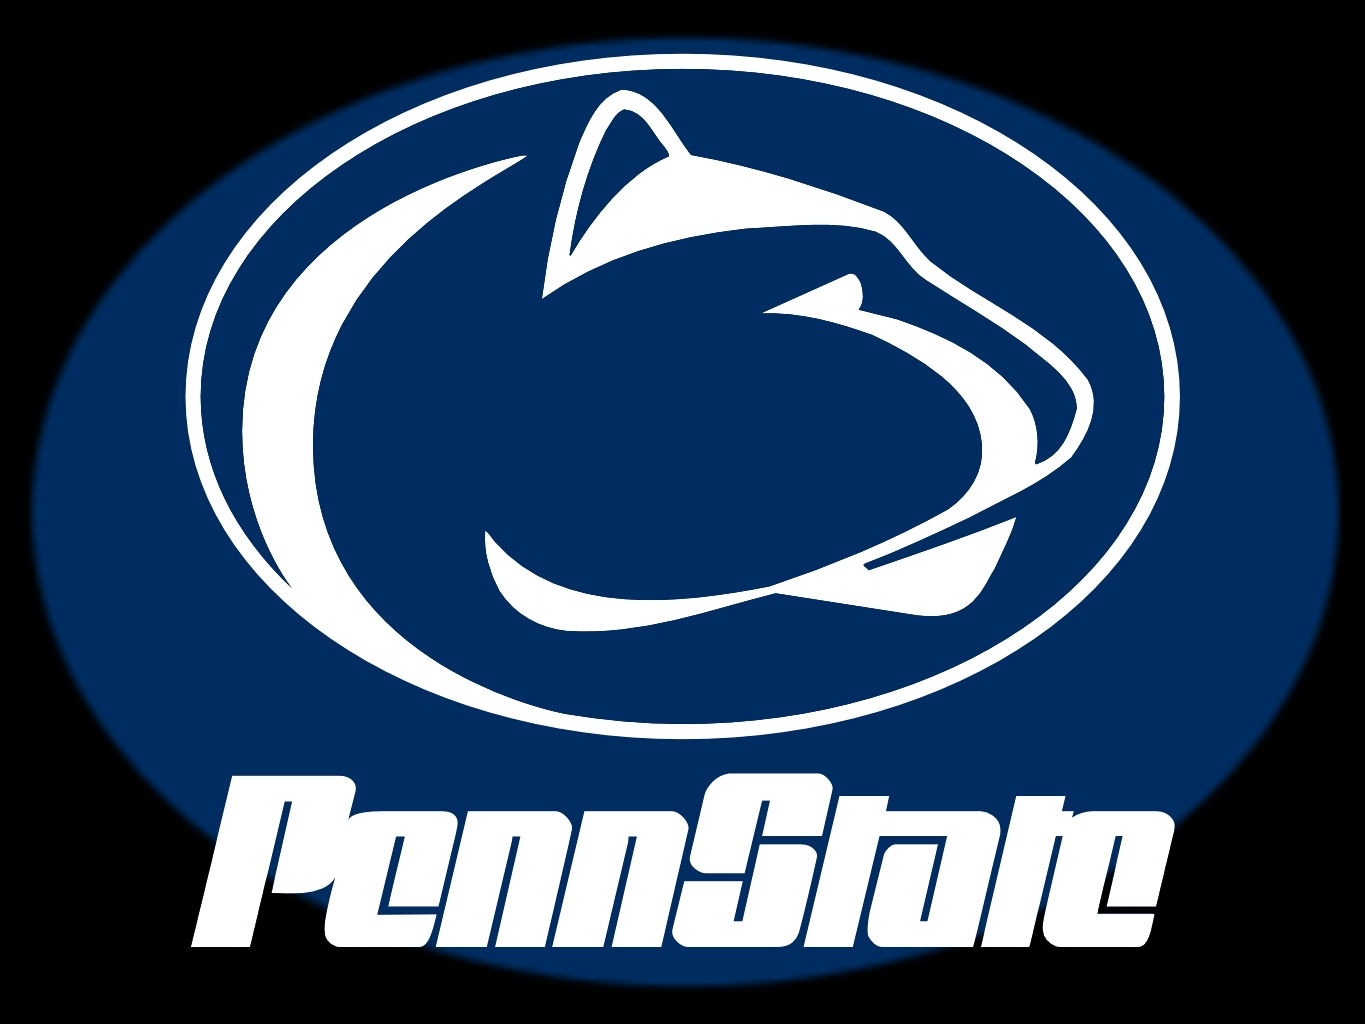 Clipart penn state logo banner royalty free Penn State Logo Clipart - Clipart Kid banner royalty free